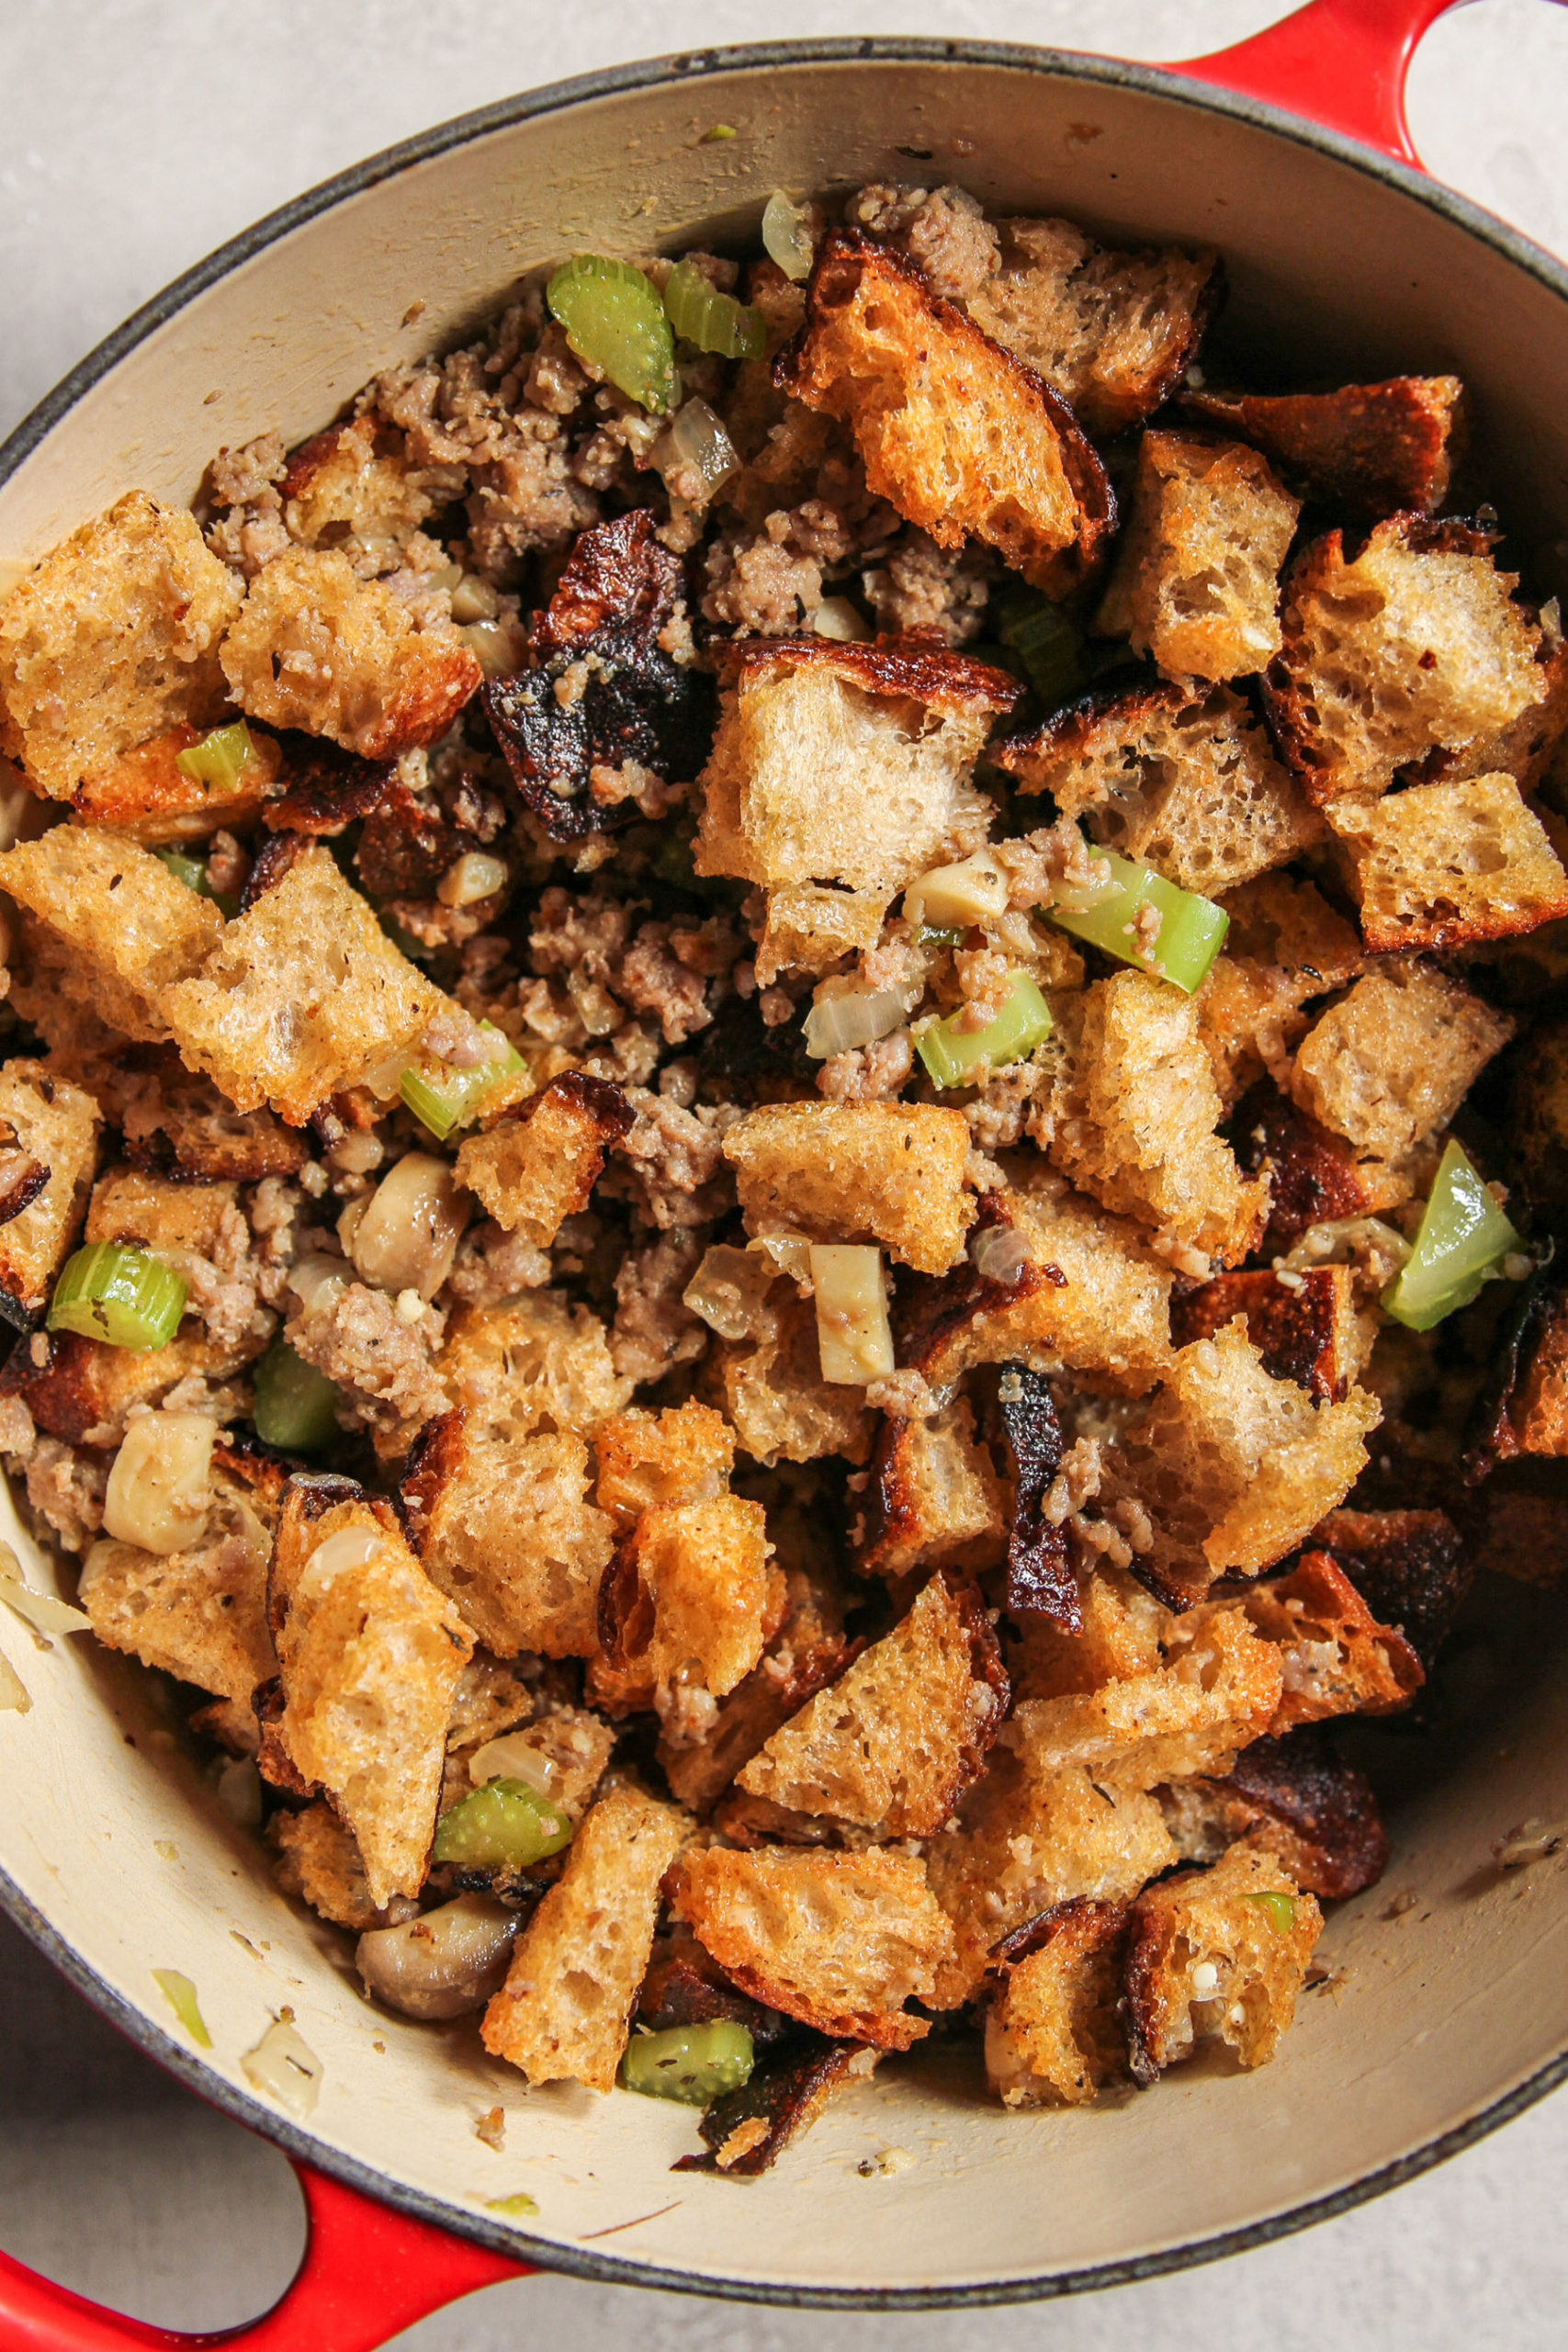 Stuffing made with sourdough bread